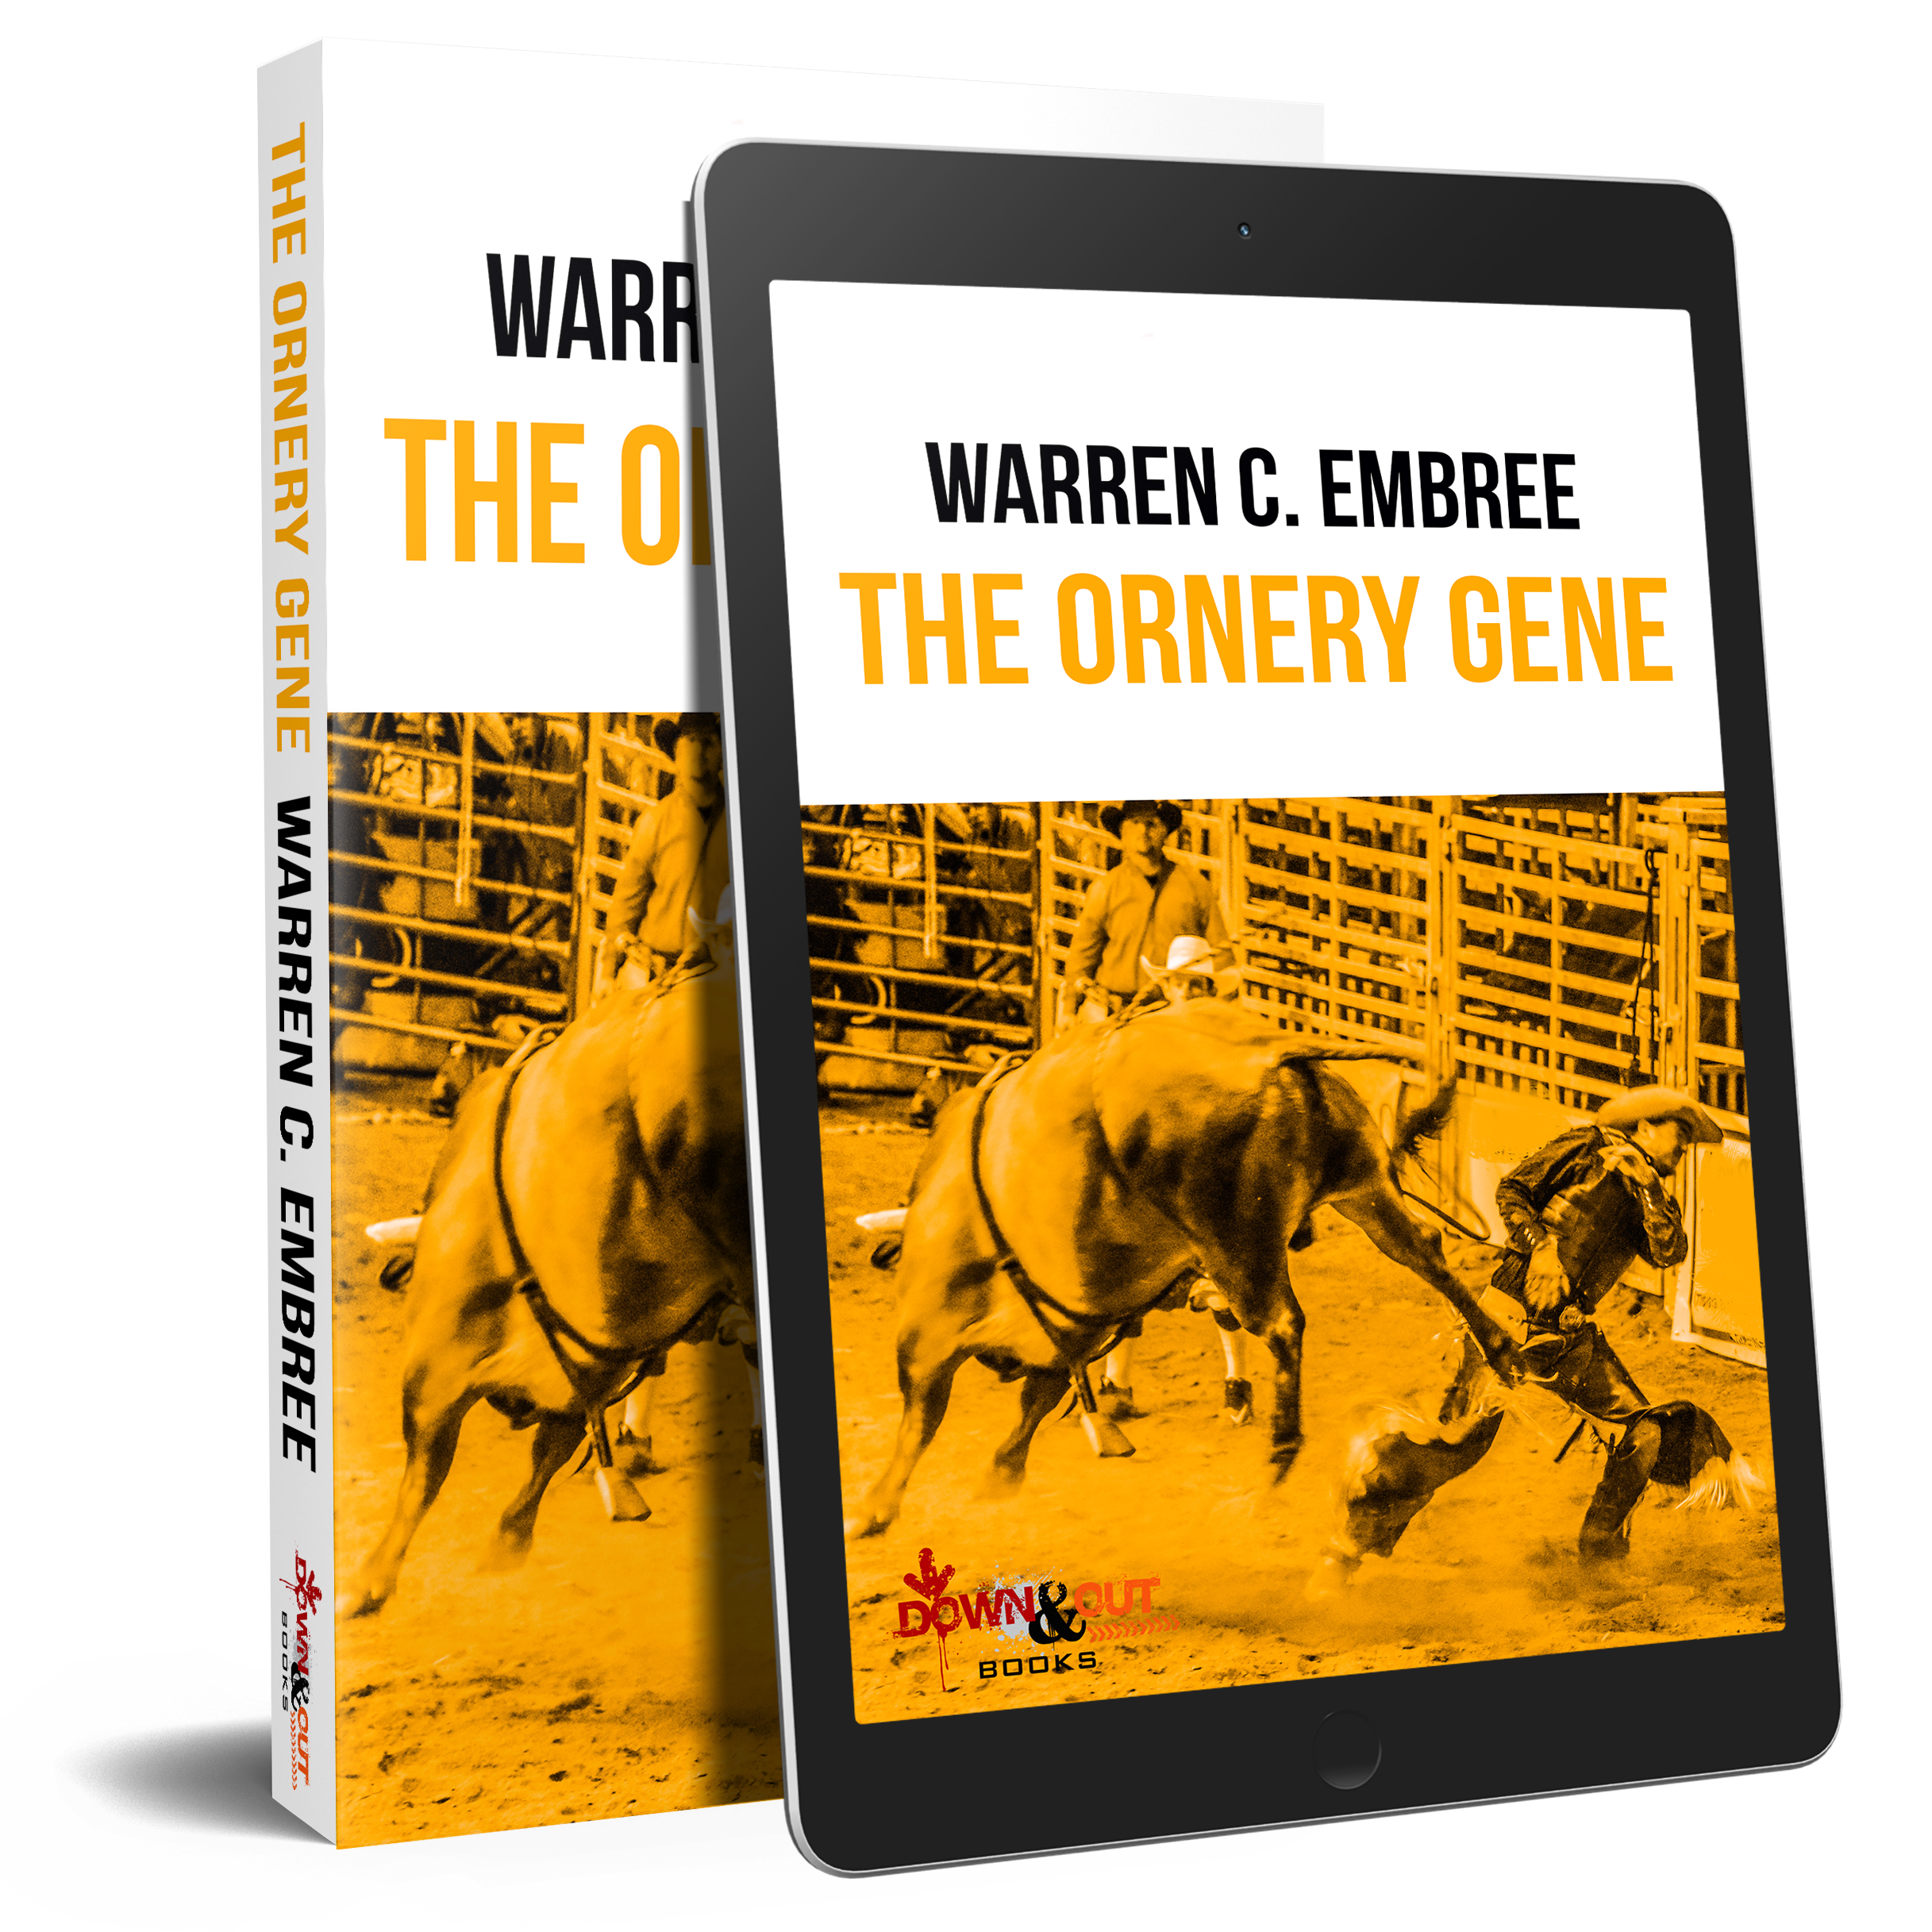 The Ornery Gene by Warren C Embree